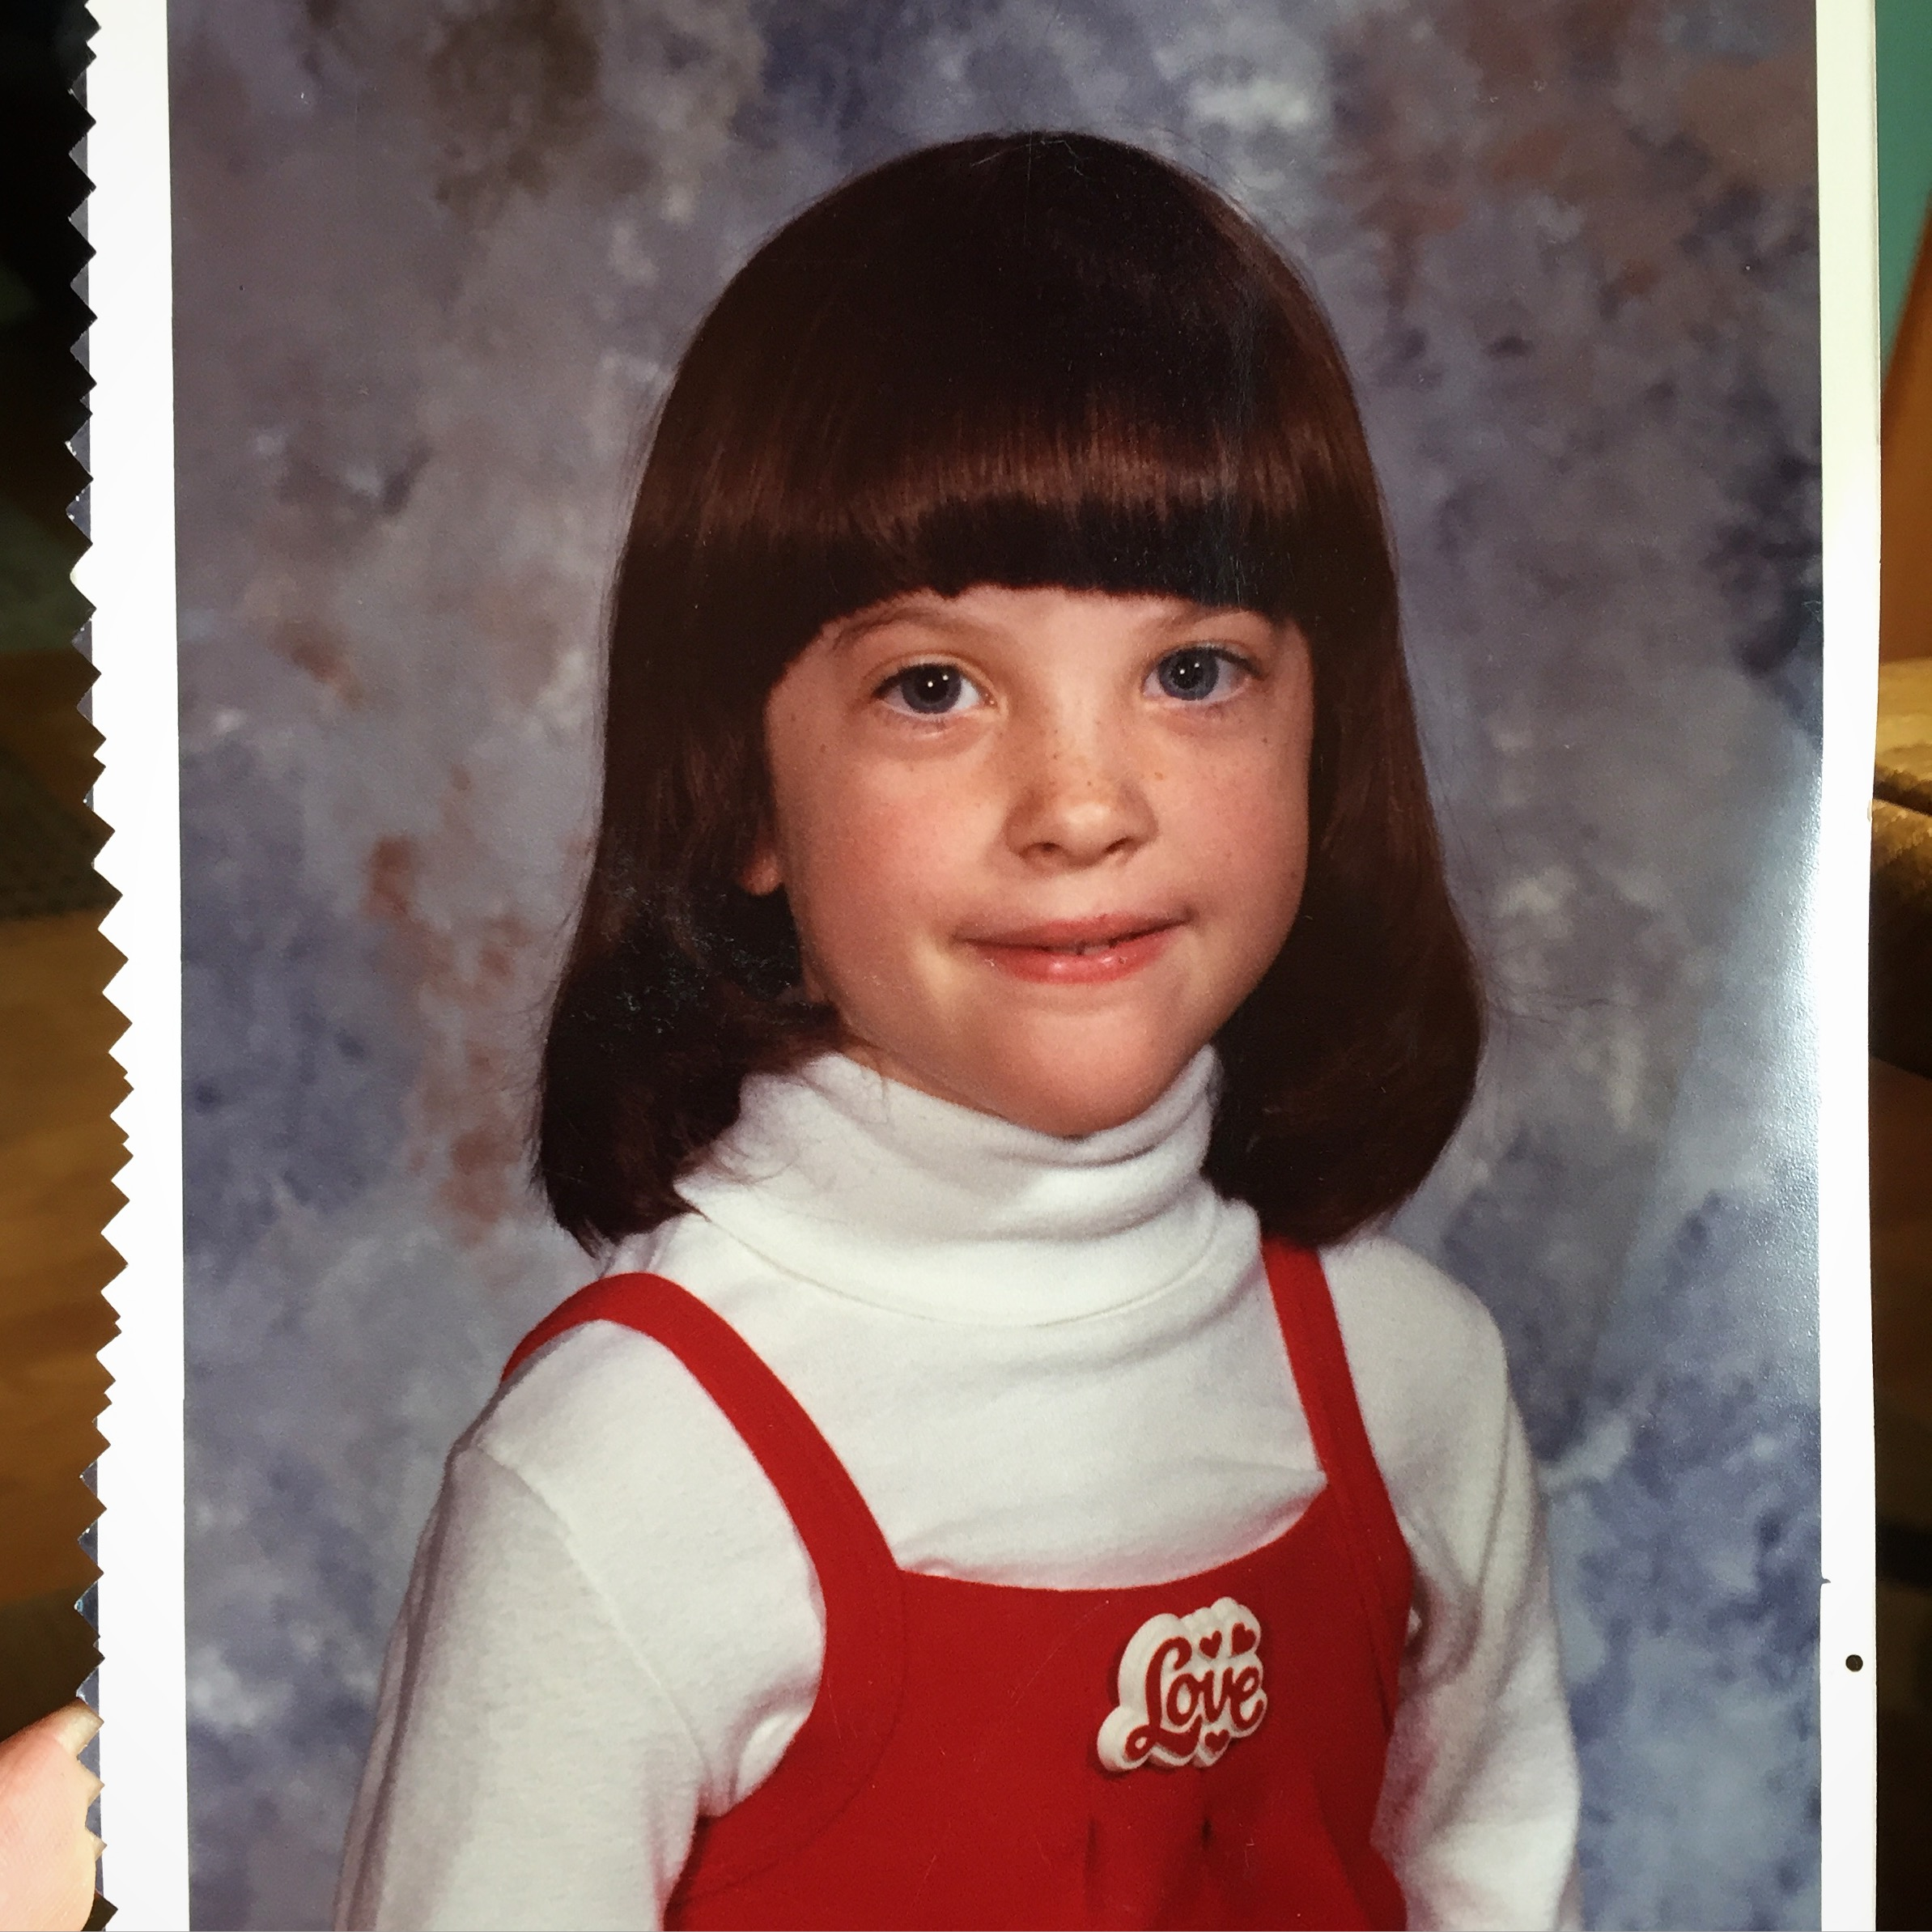 ME in 1st grade (I think) 1982ish. Yes my shirt says LOVE.